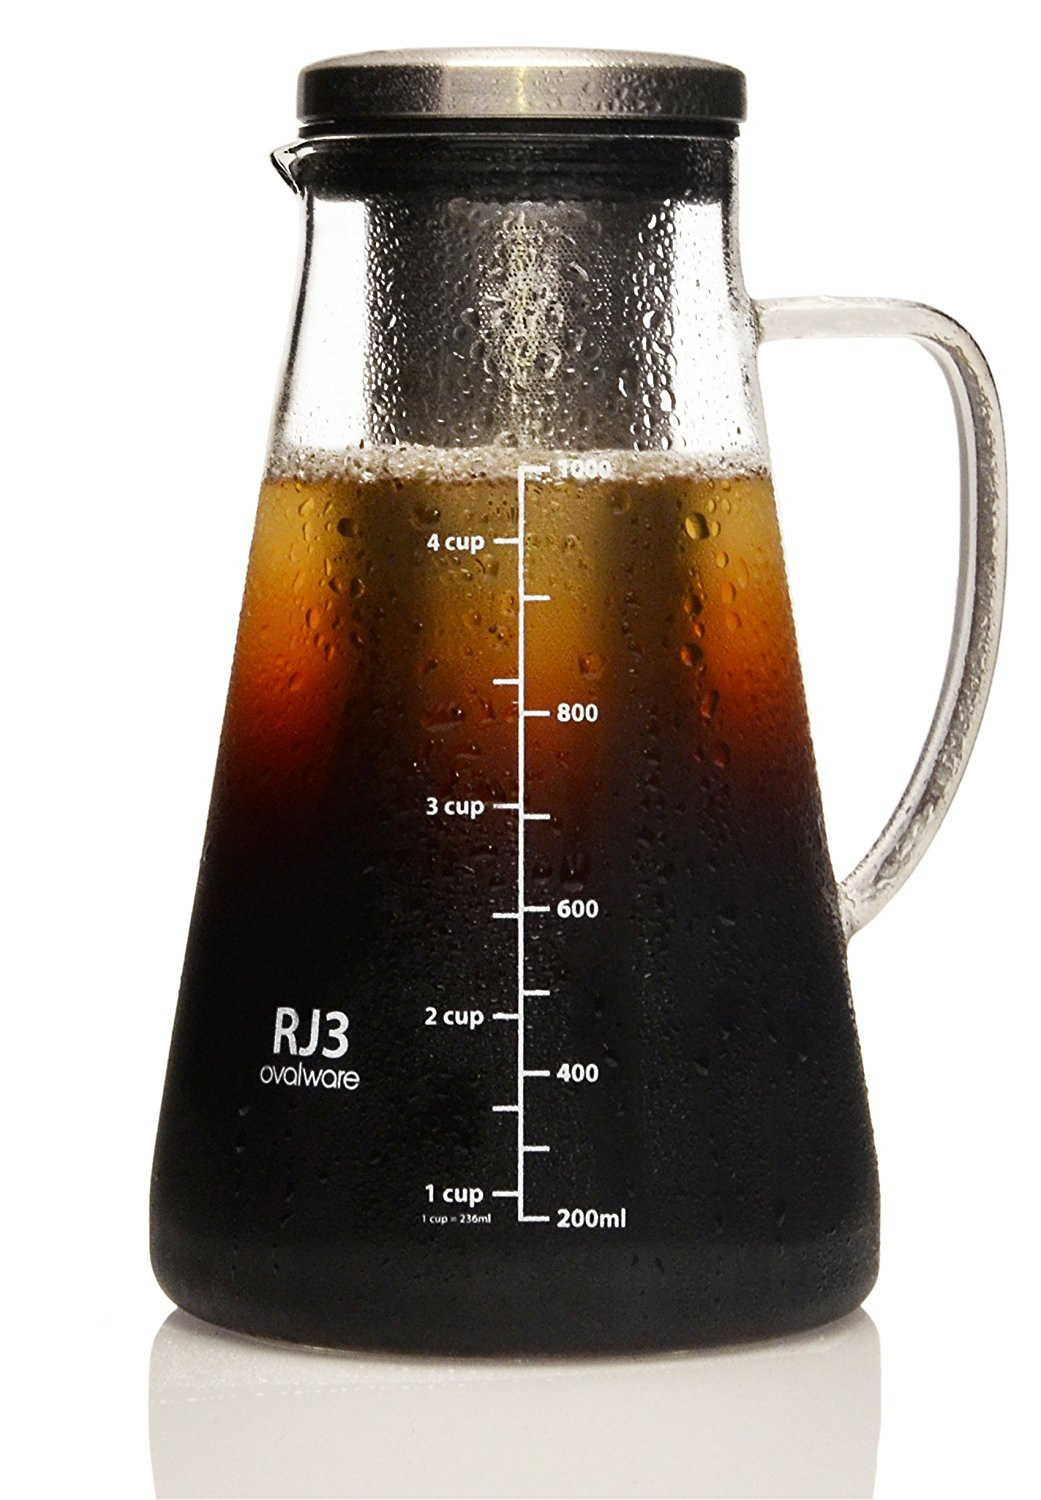 The Airtight Cold Brew Iced Coffee Maker and Tea Infuser crafts smoother coffee with less effort. Cold brew lovers will appreciate having this maker which locks in freshness and flavor for up to two weeks (not that your cold brew will last that long). Bonus! This is dishwasher safe and can be found at Amazon. (Image: Amazon.com)<p></p>